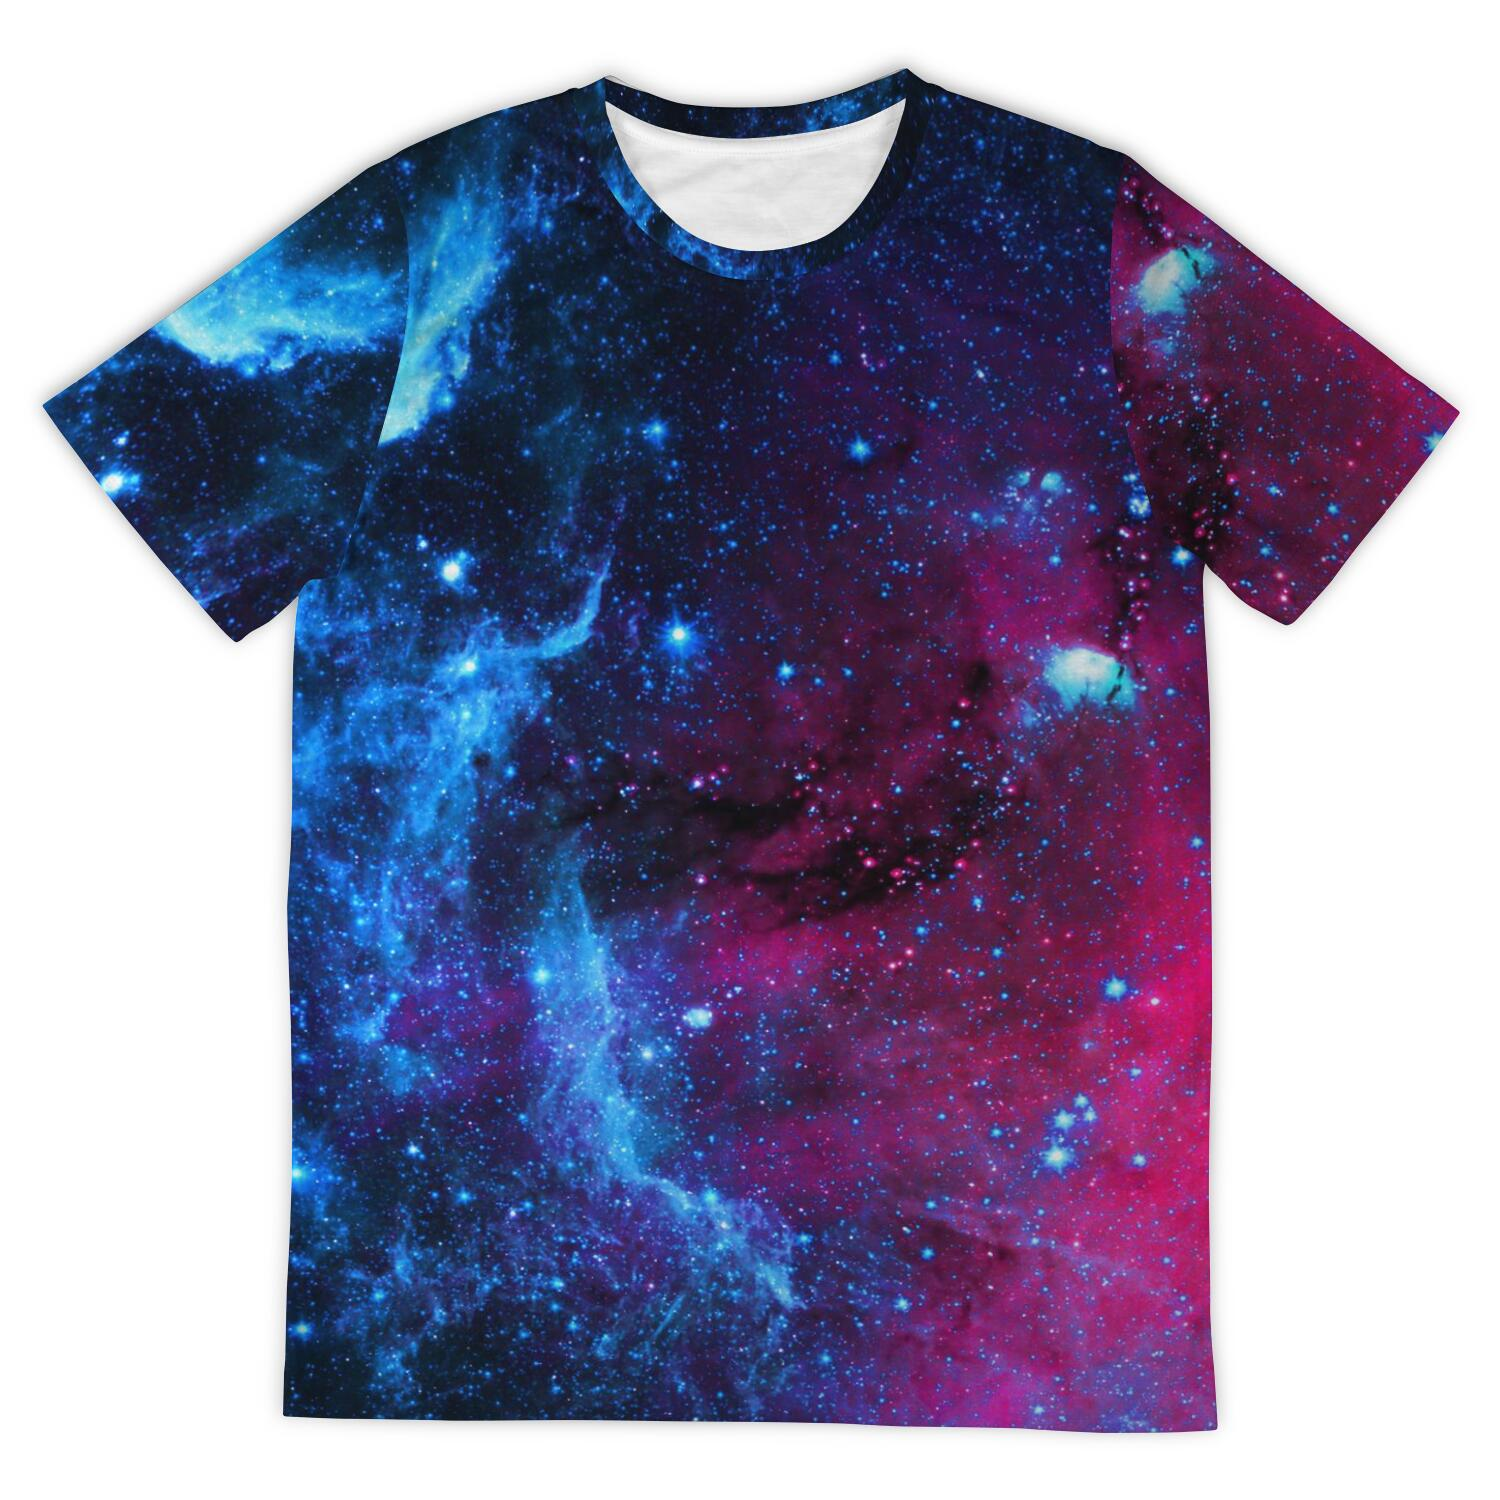 Simplemindset Galaxy All Over Print T-Shirt - Simple Mindset